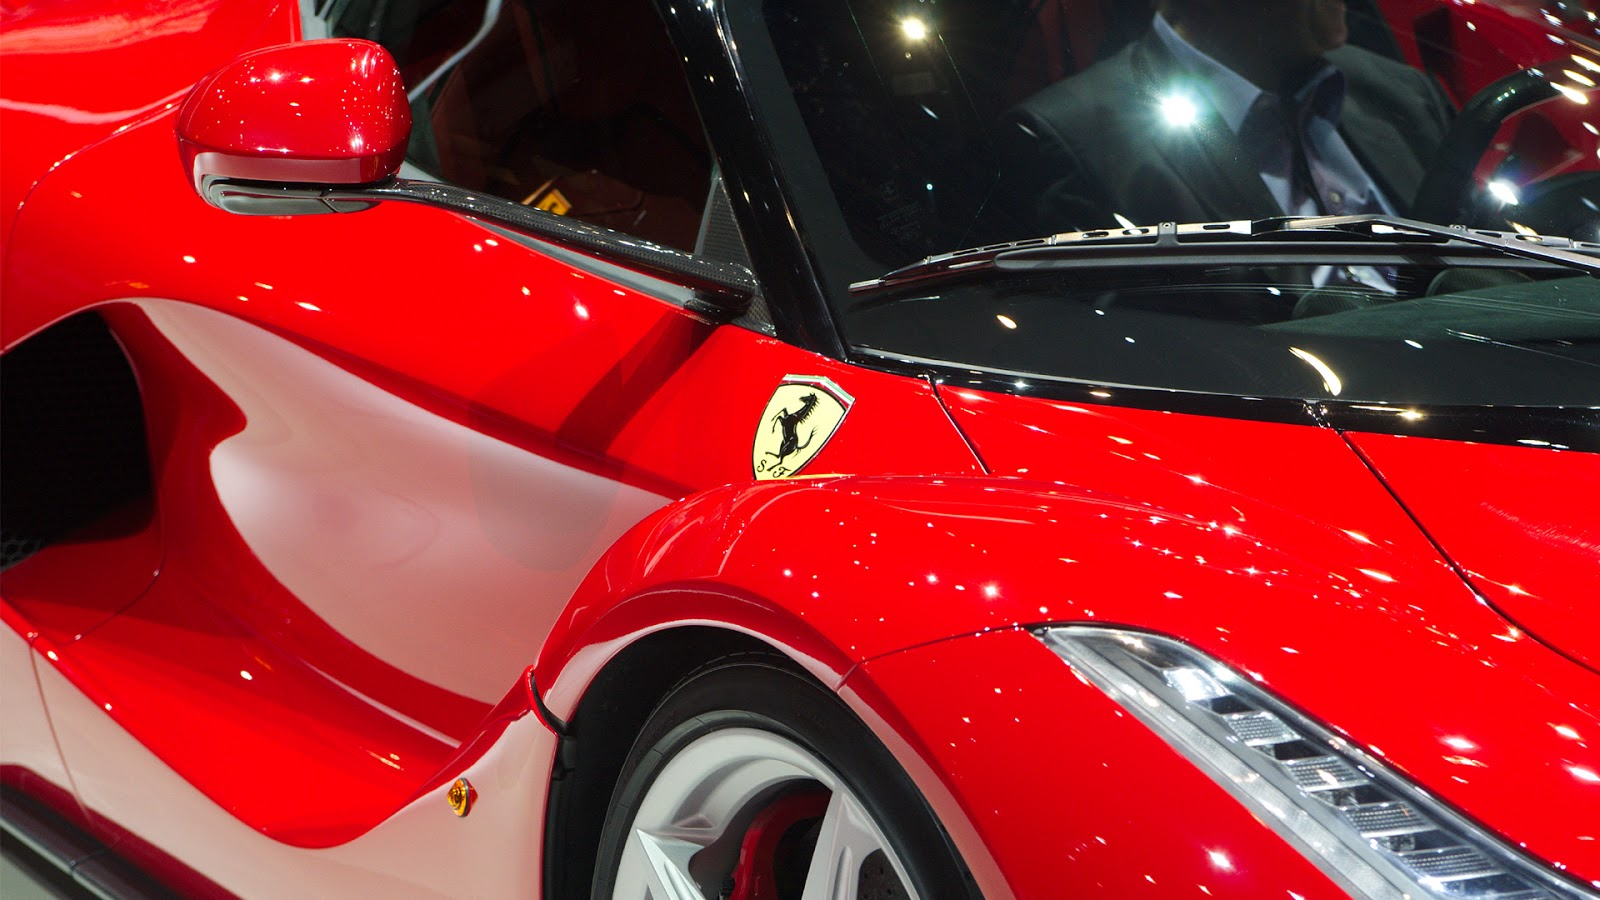 laferrari hd wallpapers high definition free background